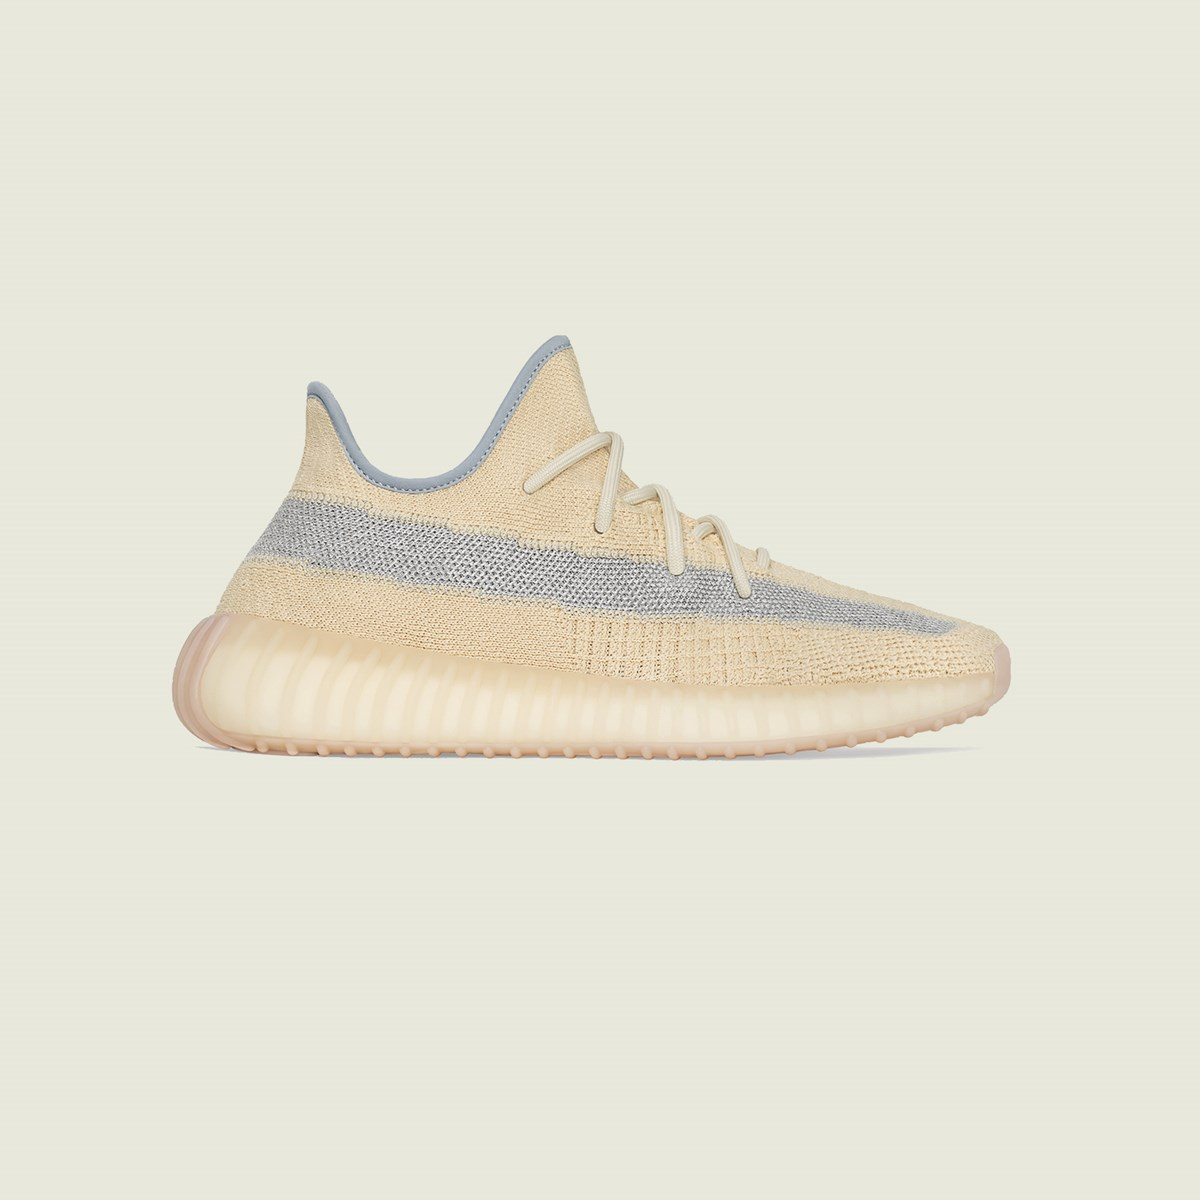 Yeezy Boost 350 V2 FY5158